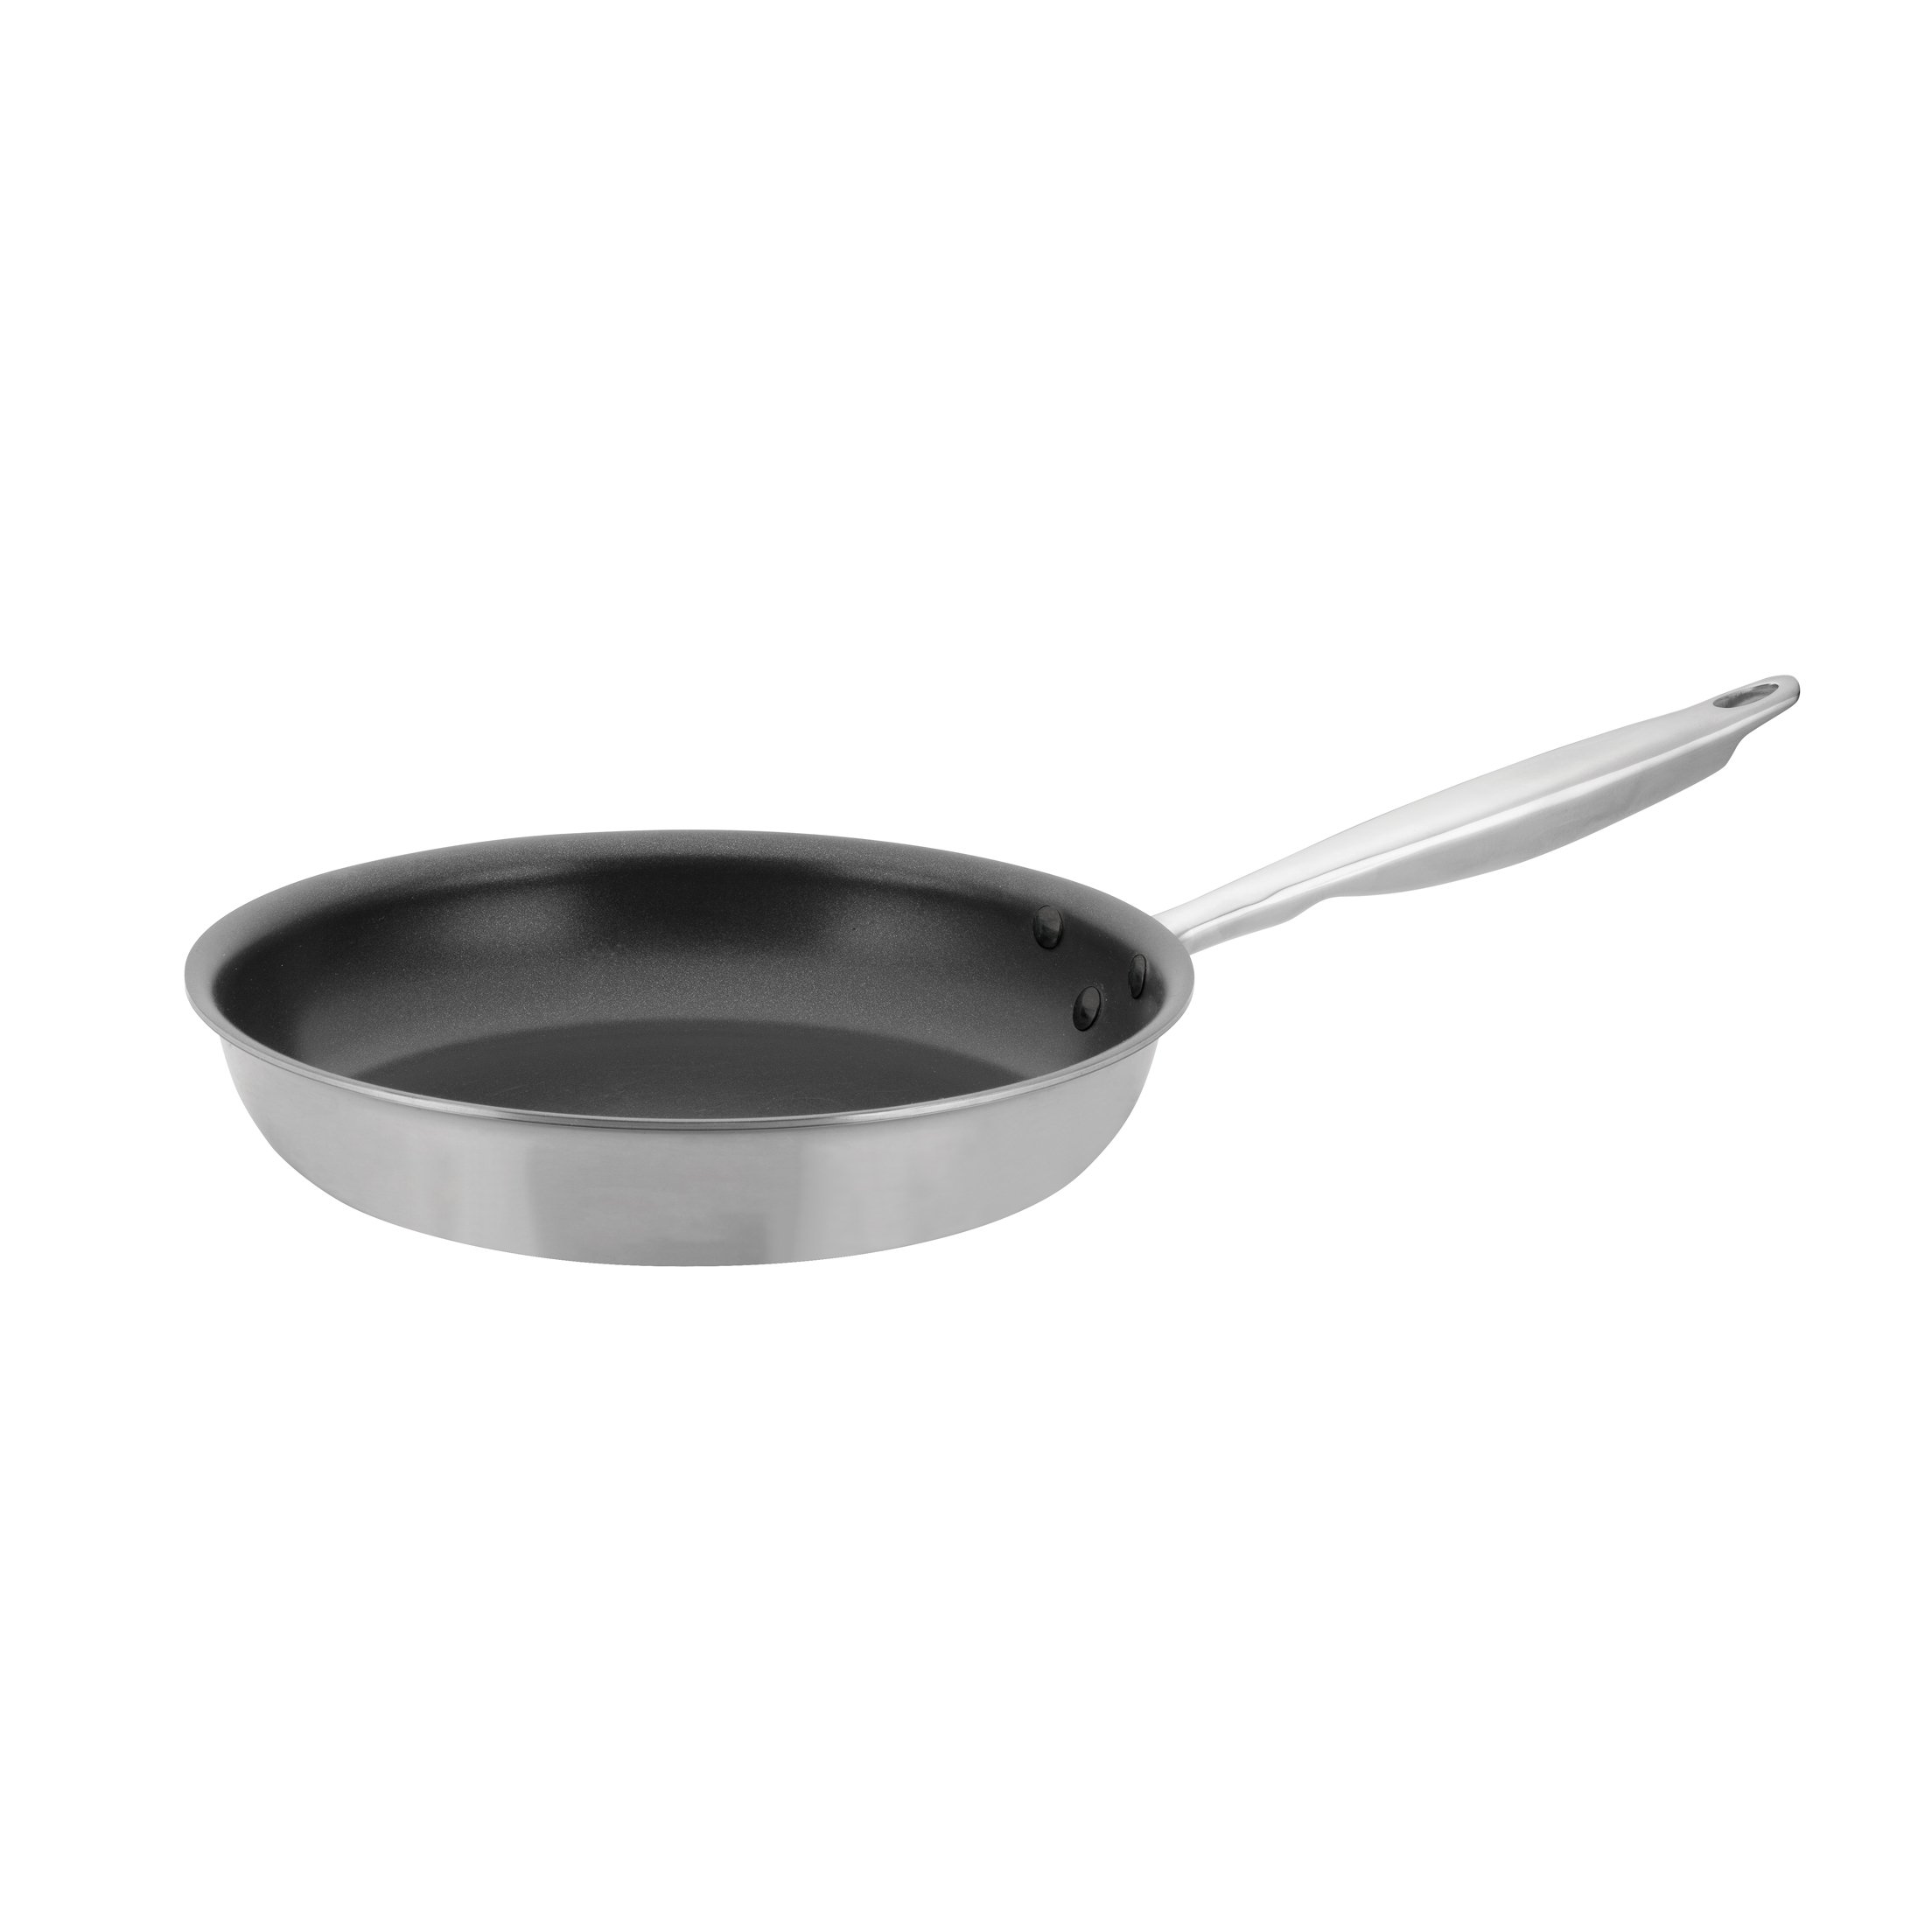 Winco TGFP-10NS fry pan